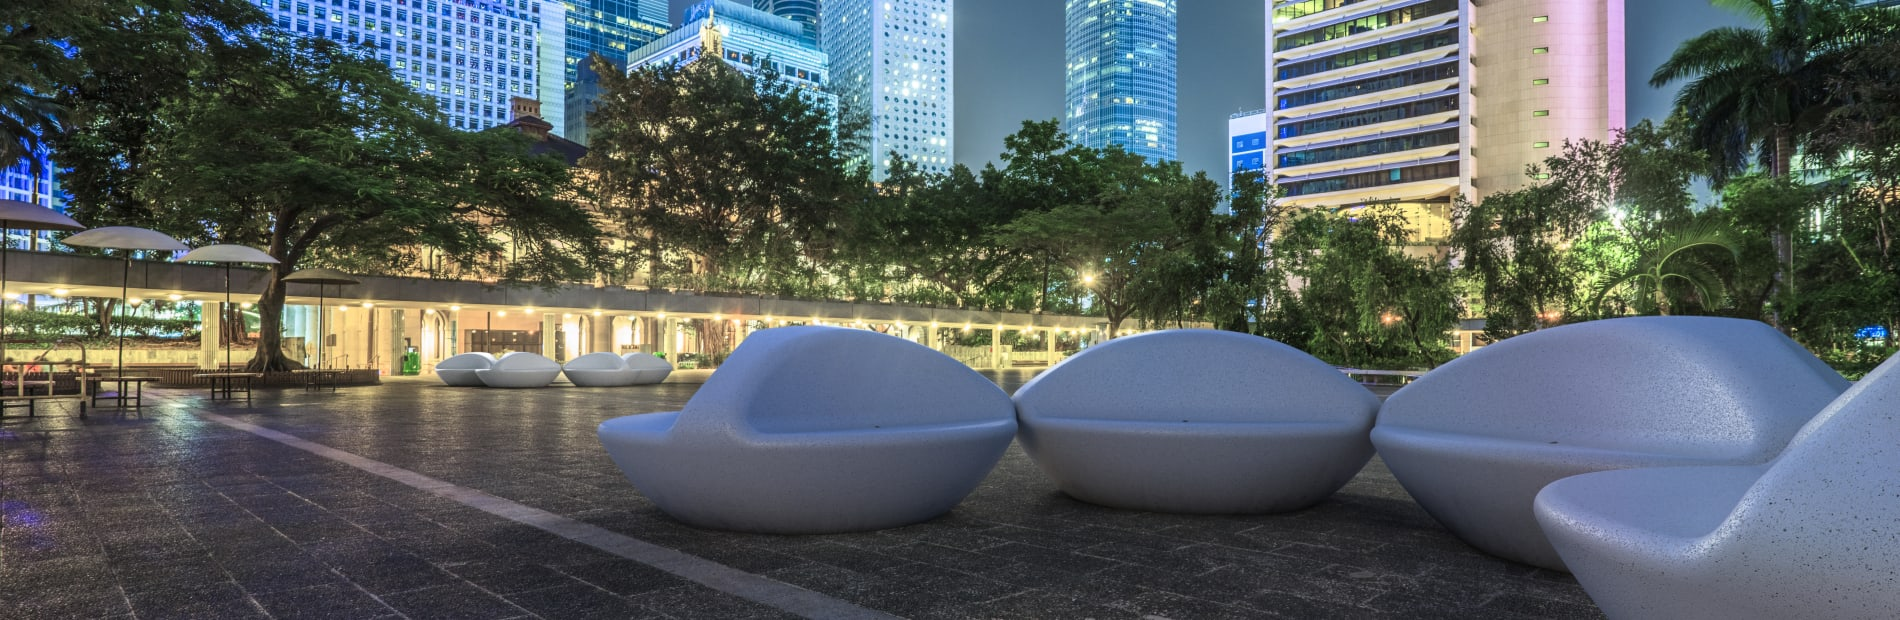 Universo benches seen at night against a city backdrop